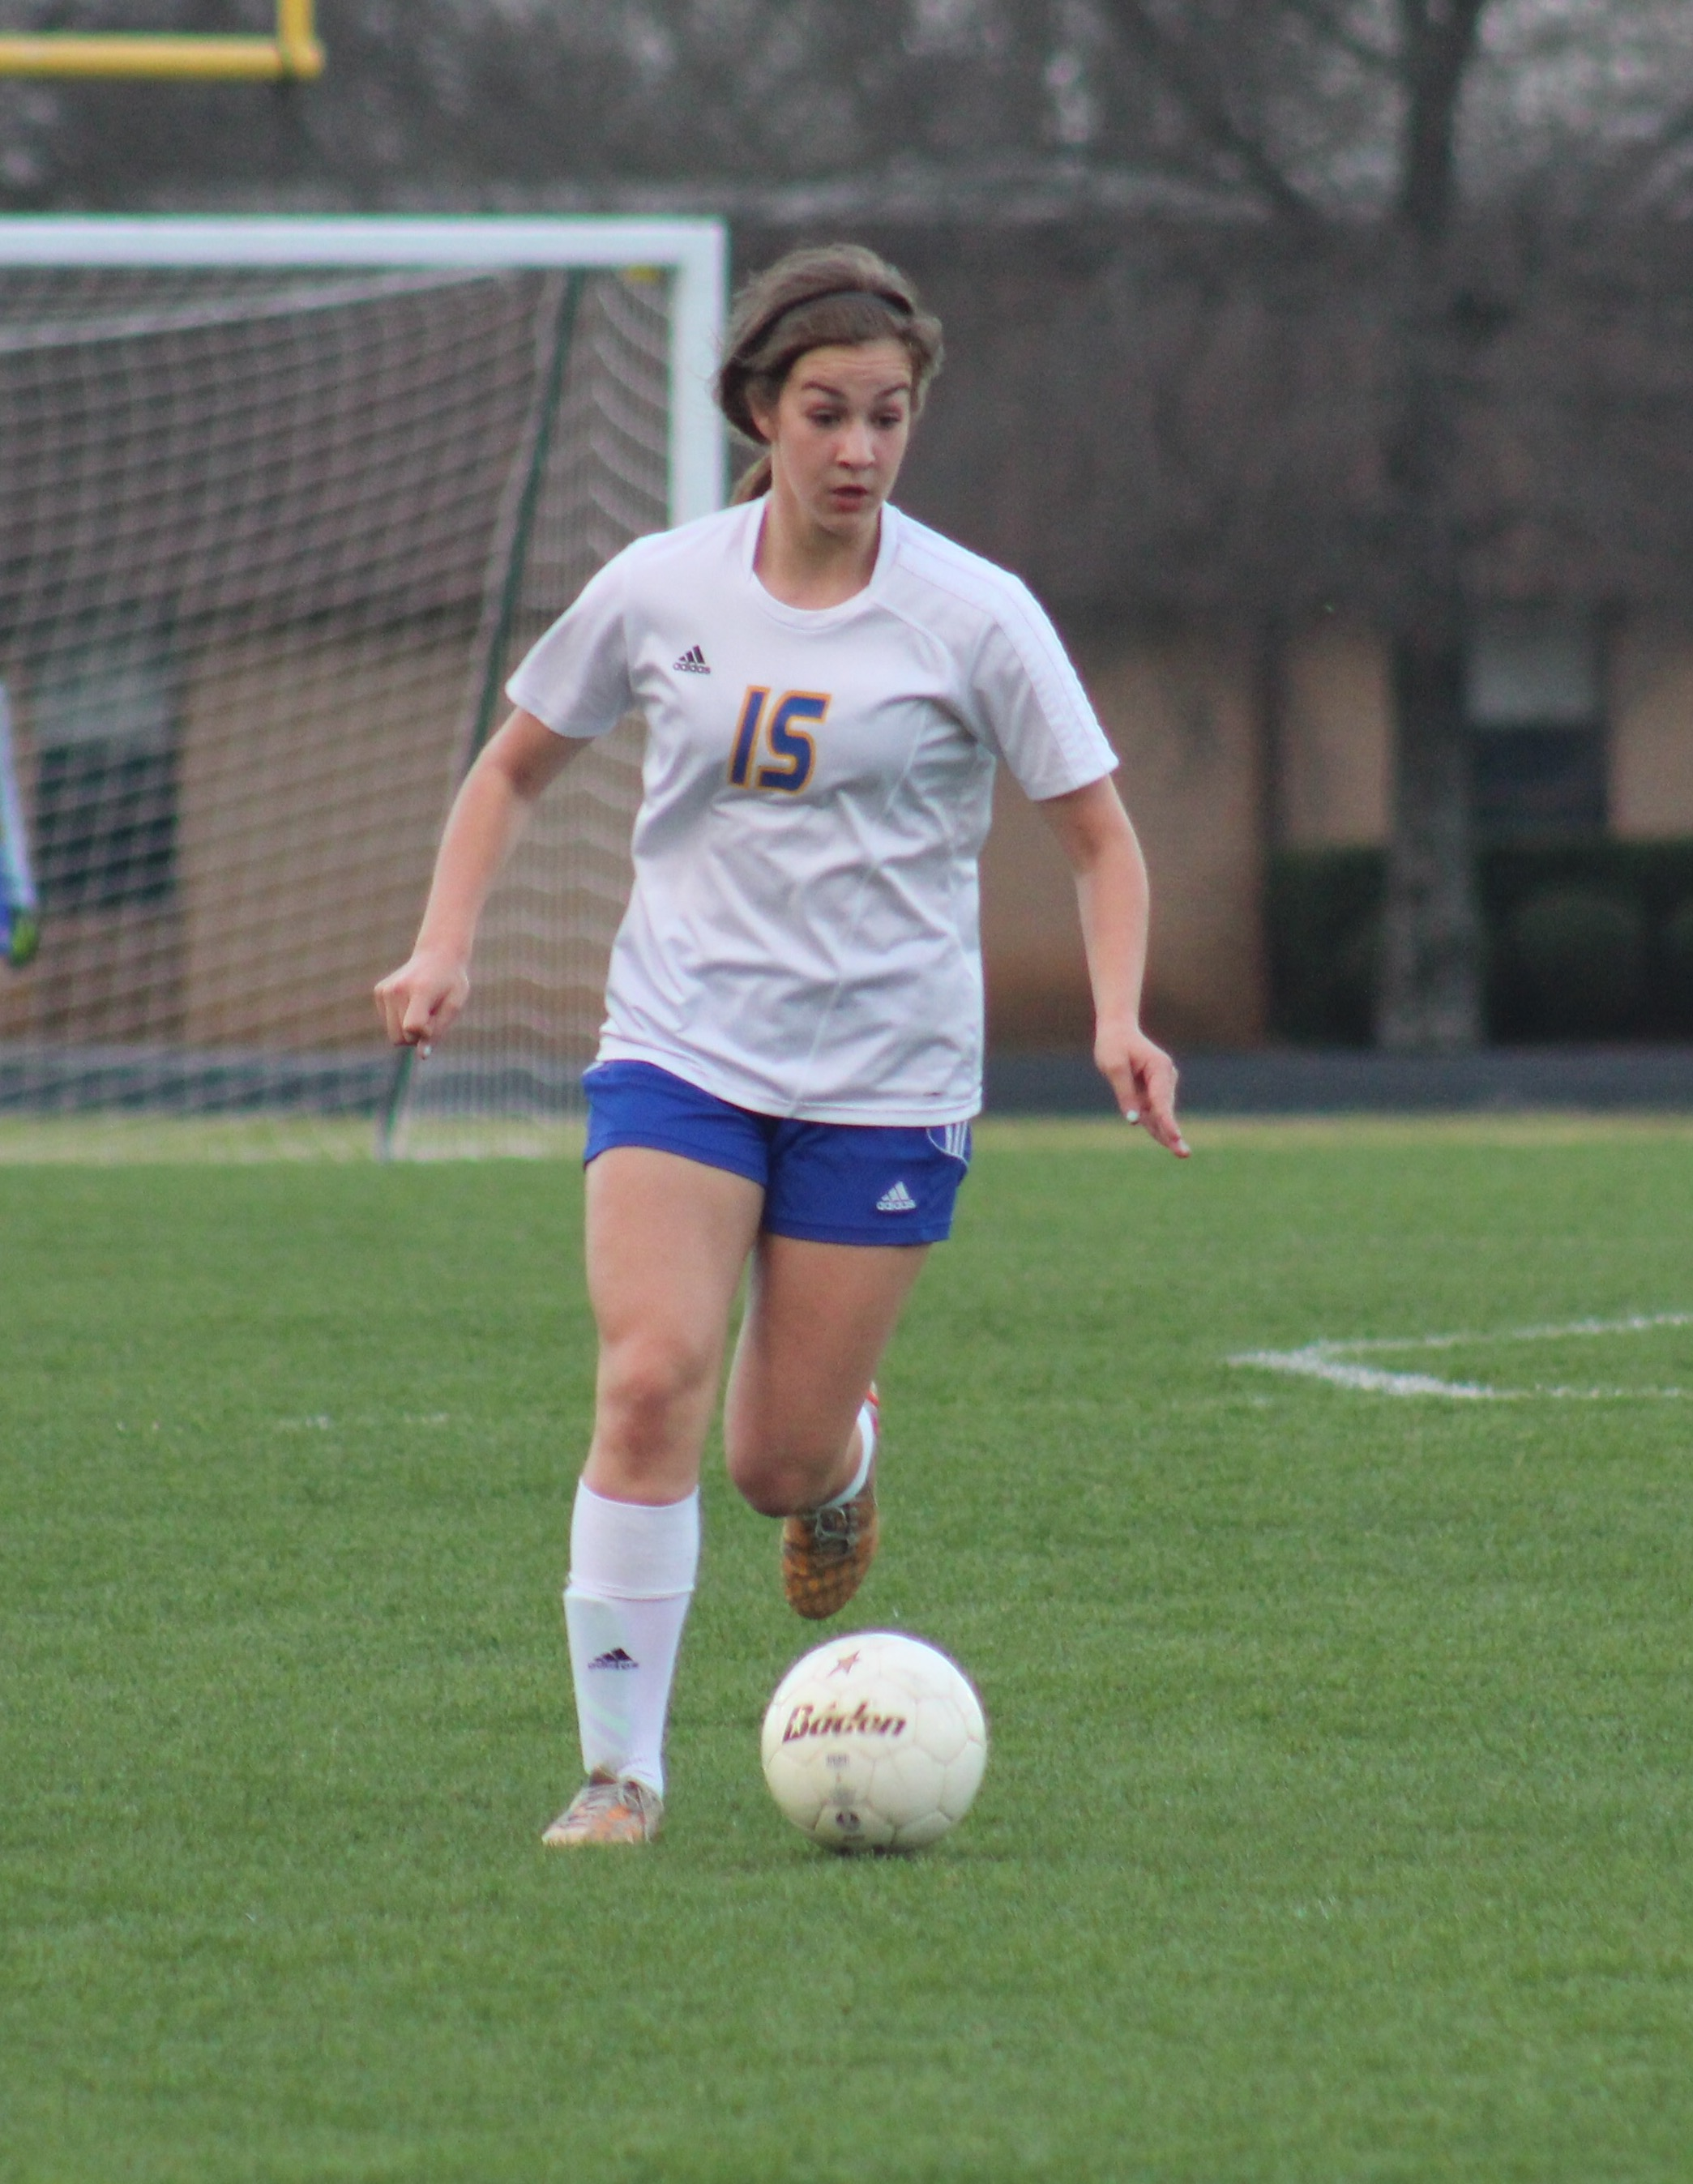 Reyna Hildreth moves the ball